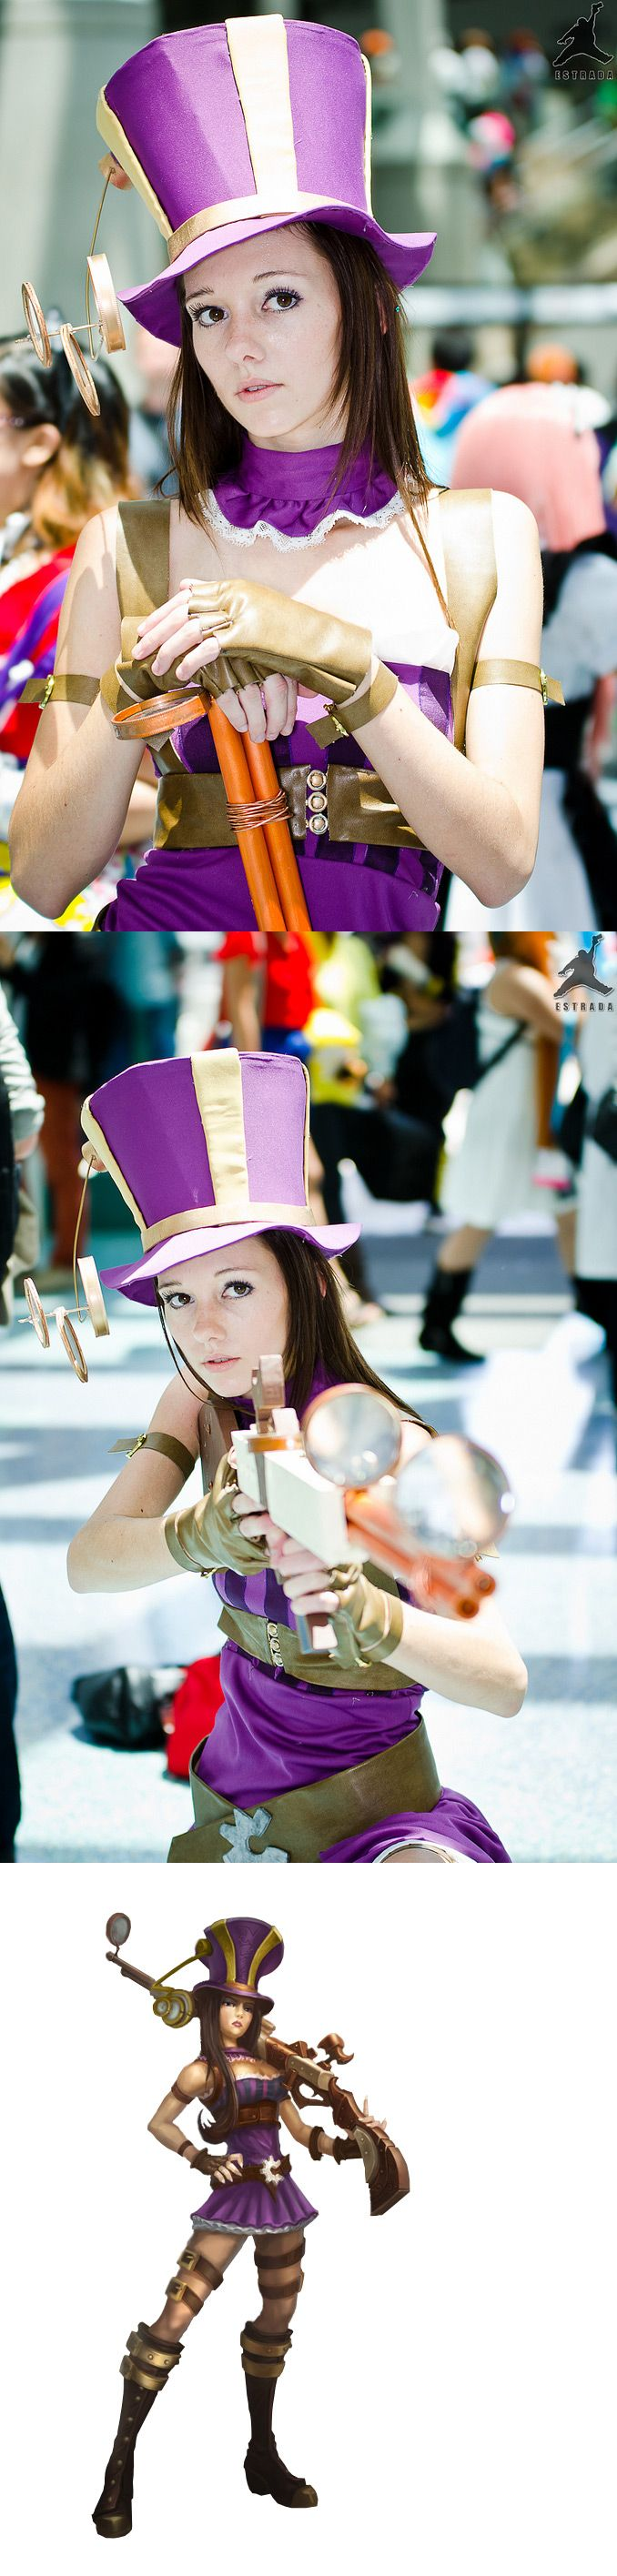 Caitlyn: The Sniper Master  - League of Legends   Anime Expo 2012